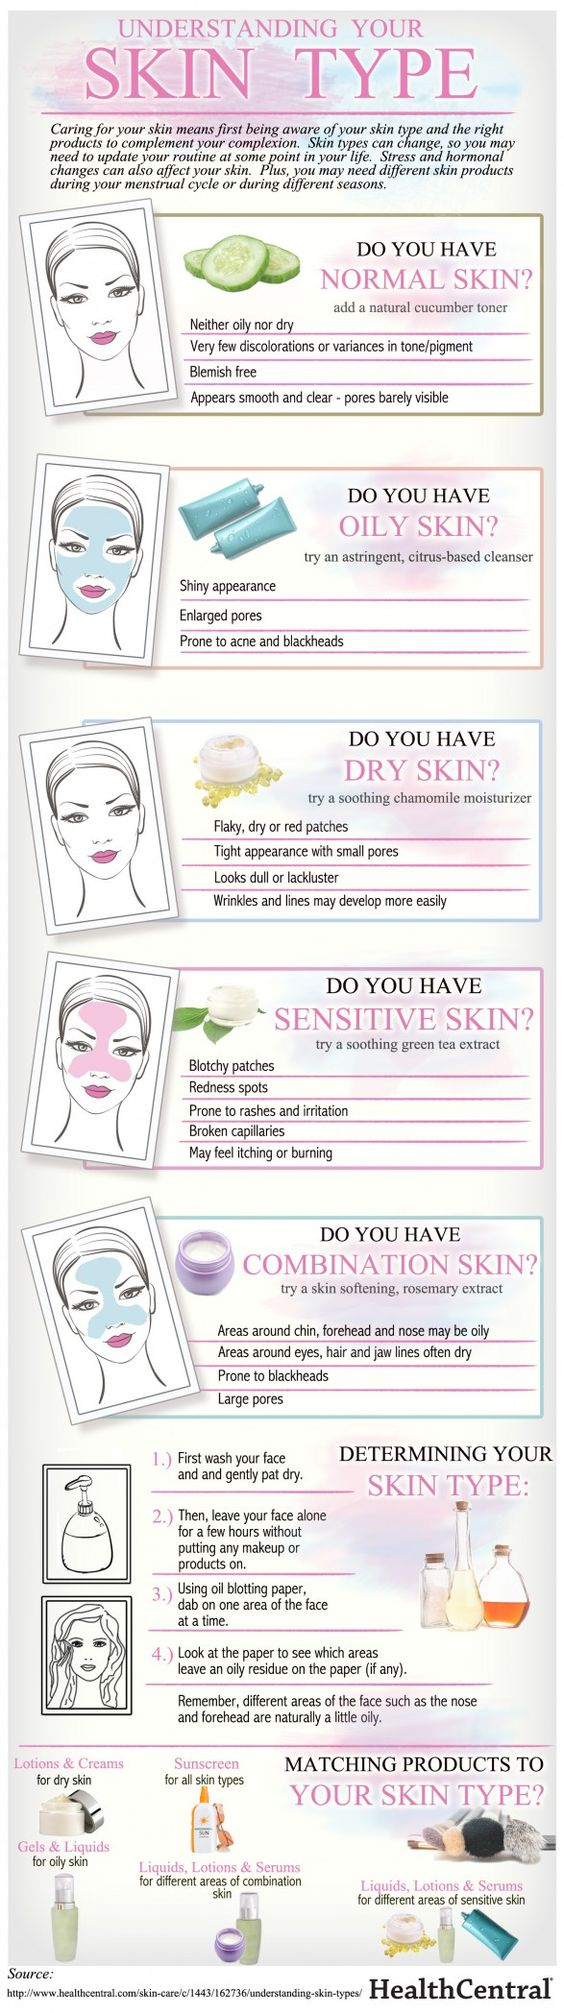 Know Your Skin Type Visual - Inside Outer Beauty